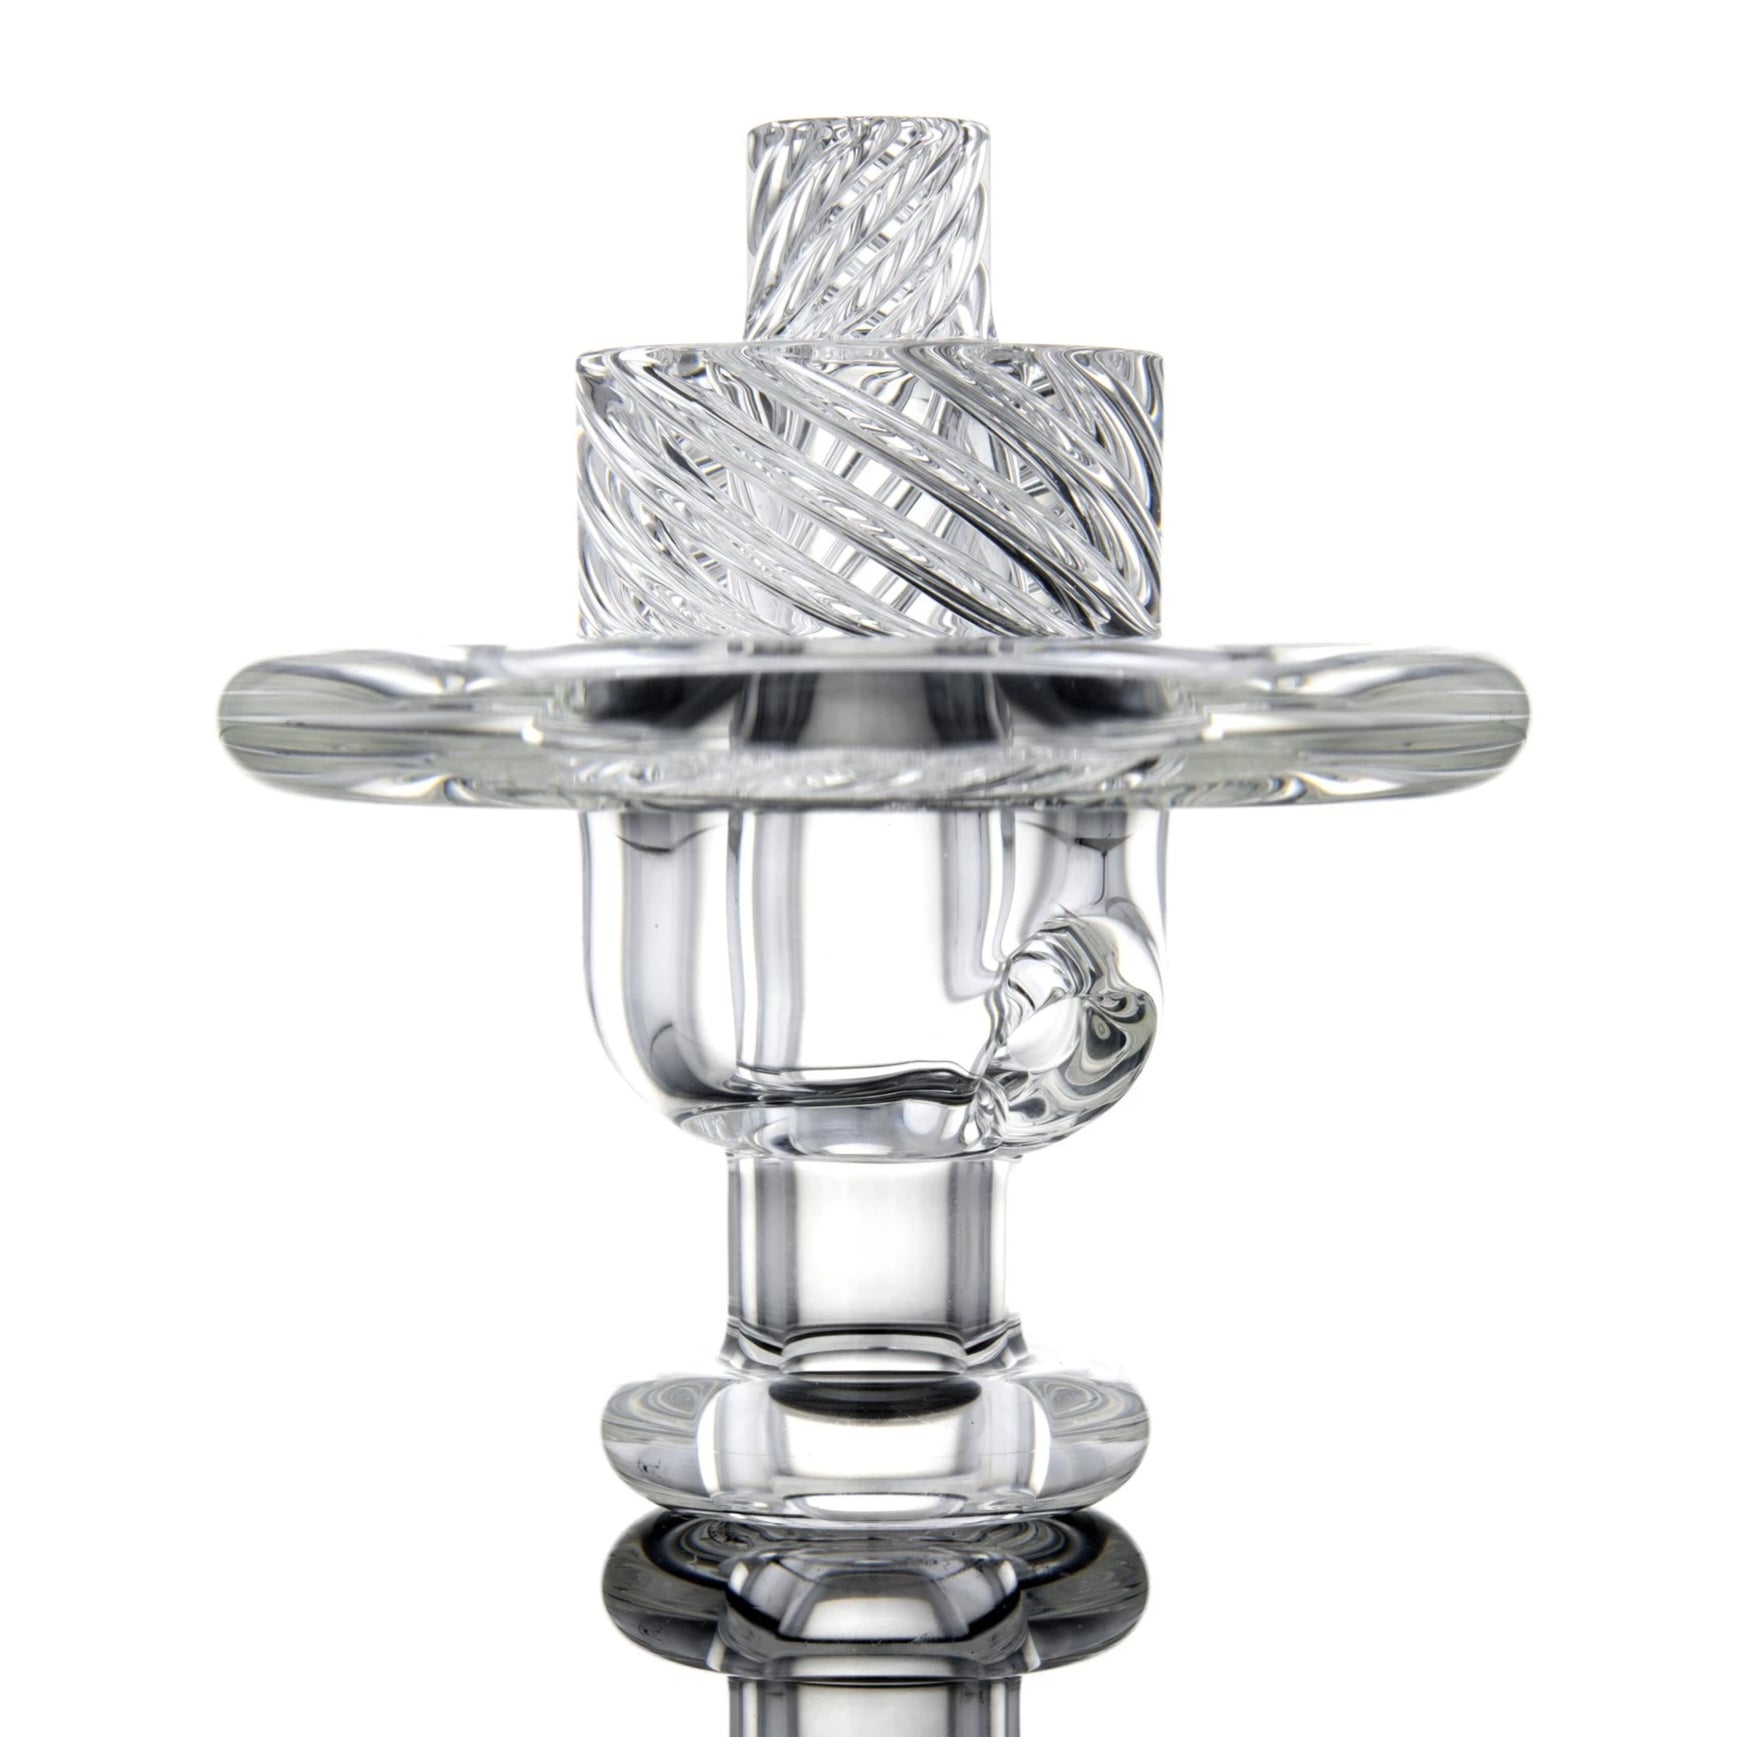 Gordo Scientific Riptide CC Carb Cap (Clear)